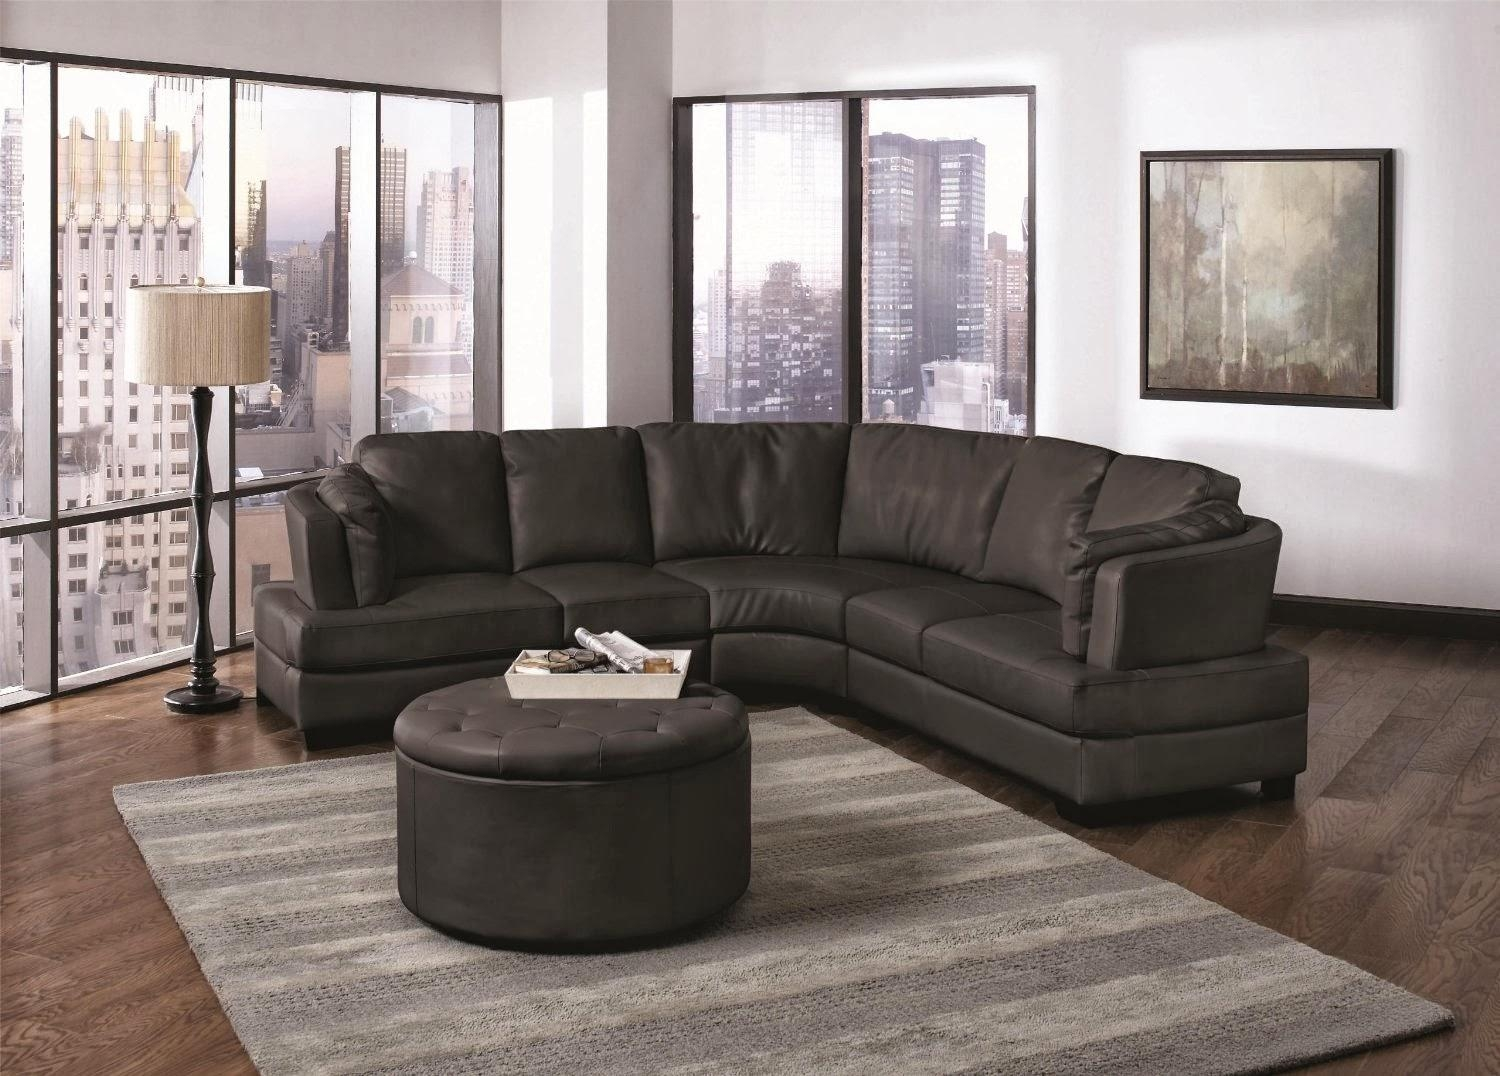 The Elegant Types Curved Sectional Sofa | Lgilab | Modern Inside Circular Sectional Sofa (View 10 of 15)